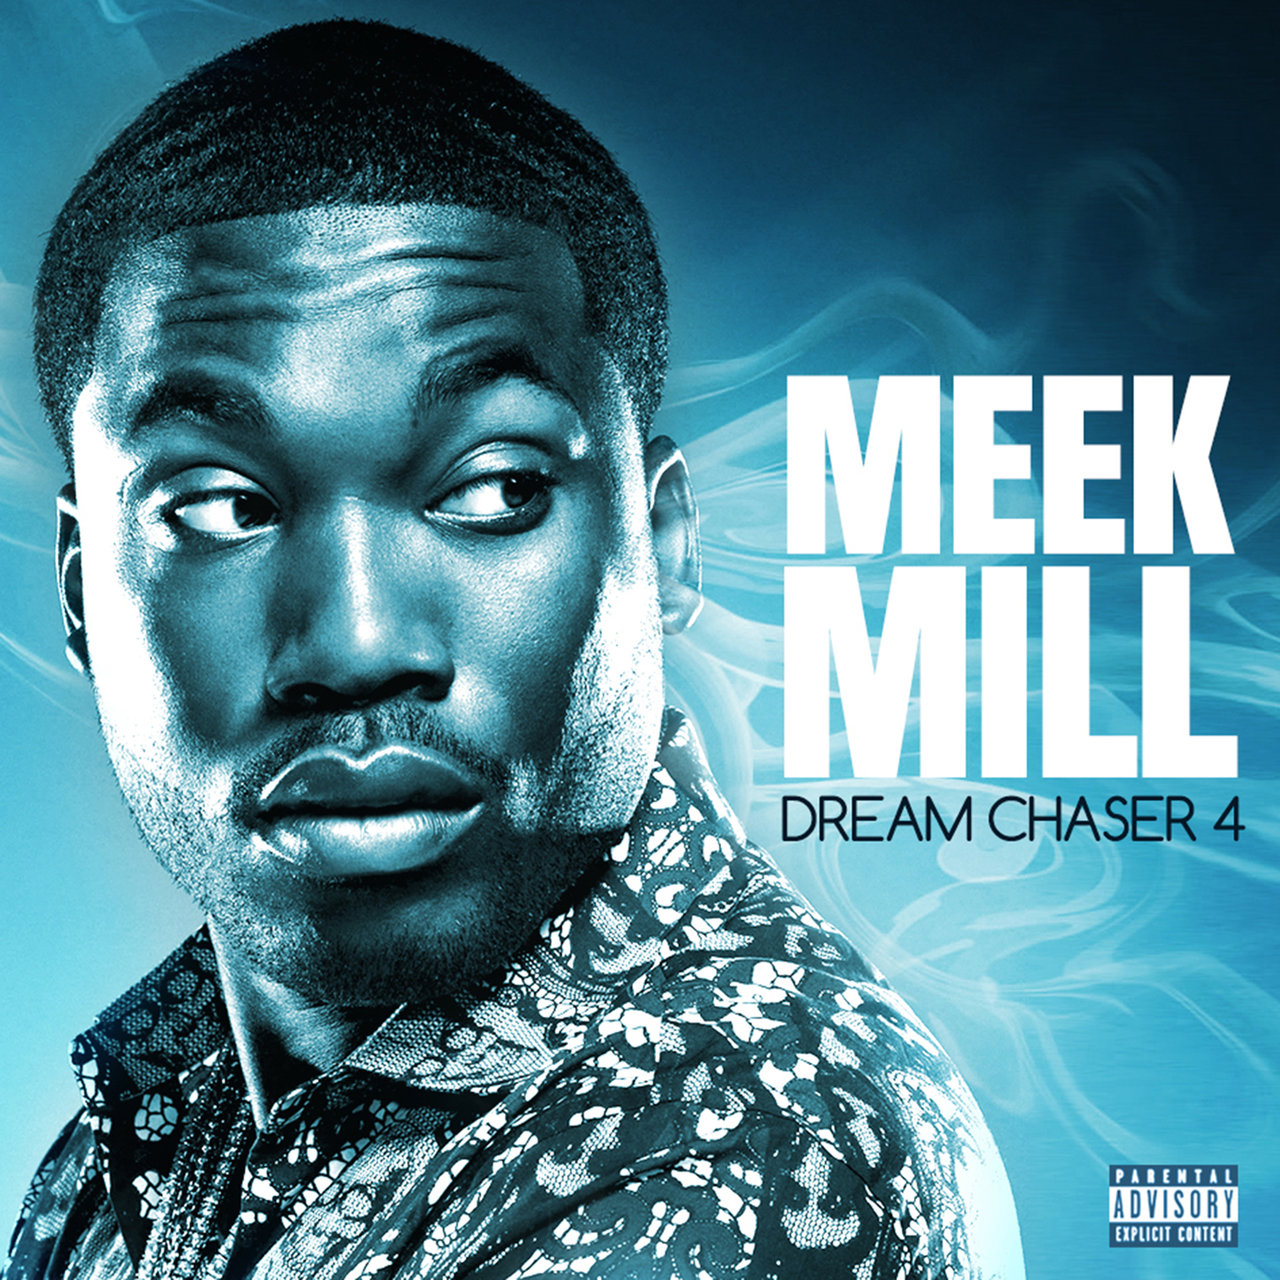 Dream Chaser 4